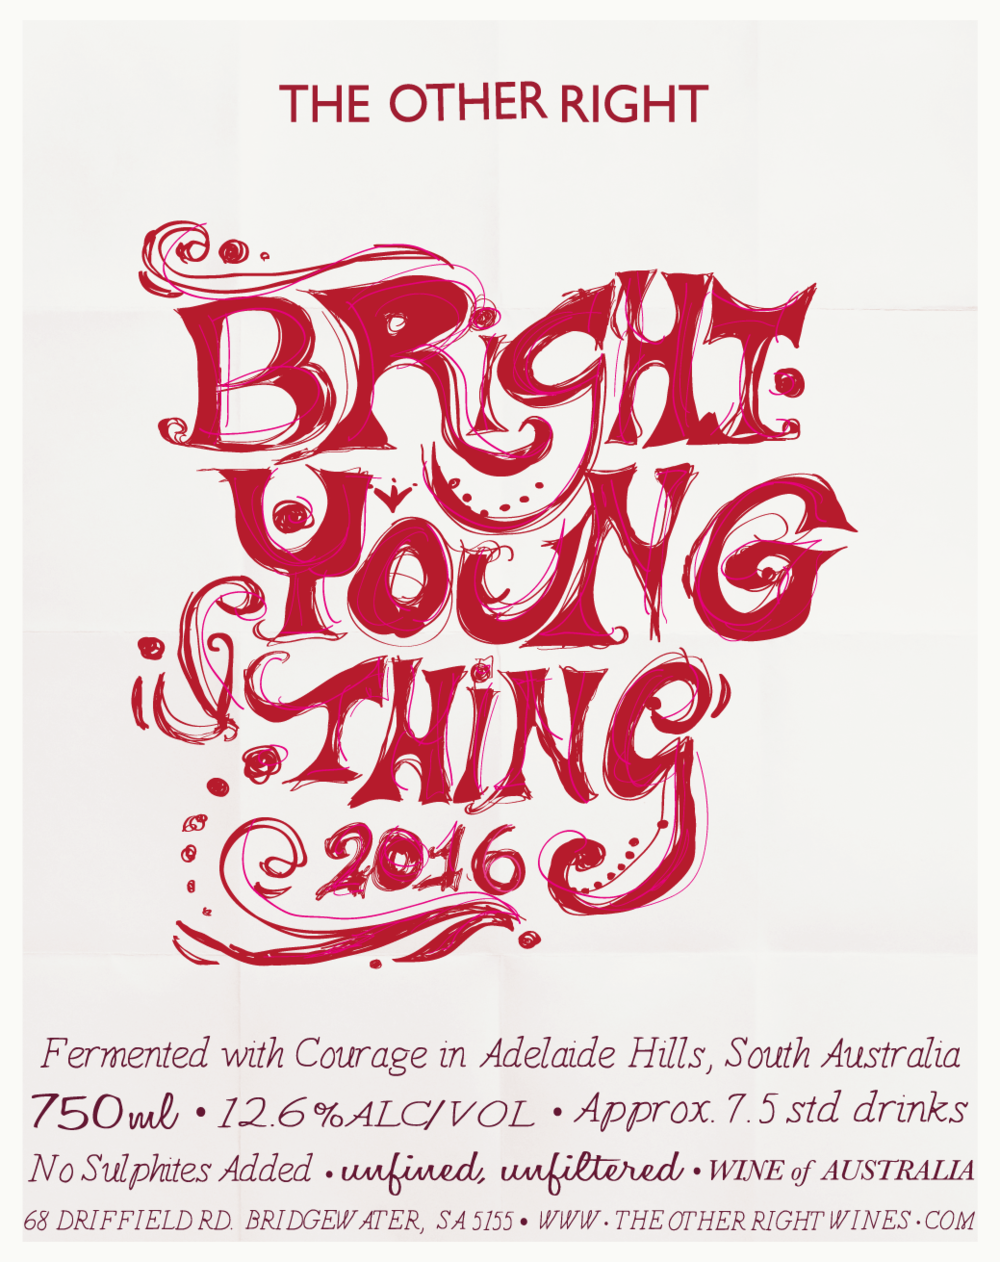 The Other Right Wines - BRIGHT YOUNG THING 2016